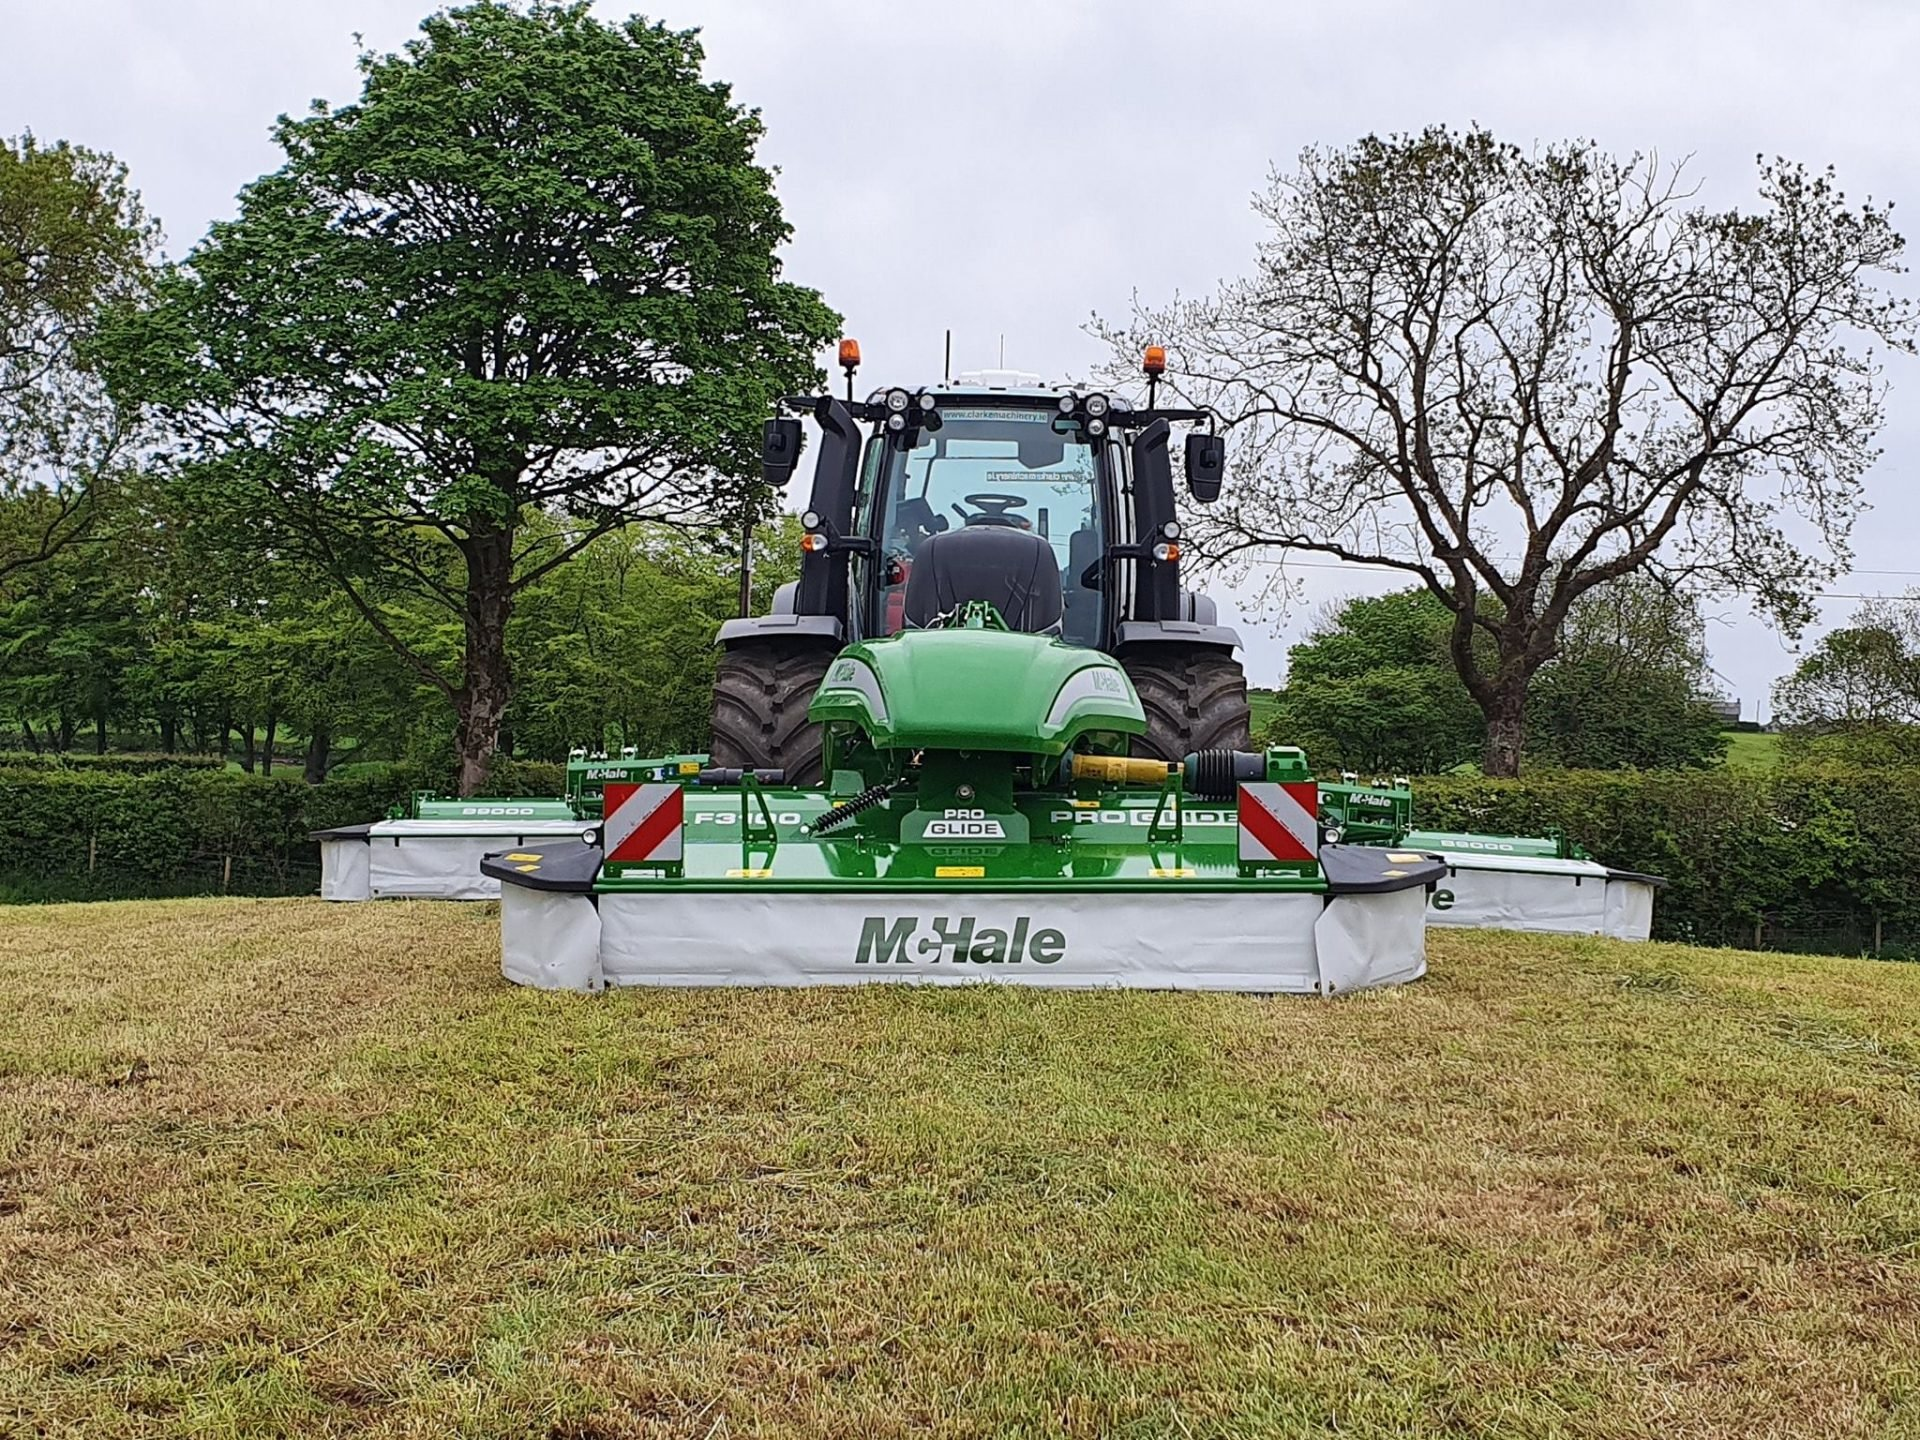 Grassmen Put The McHale Pro Glide Mowers To The Test